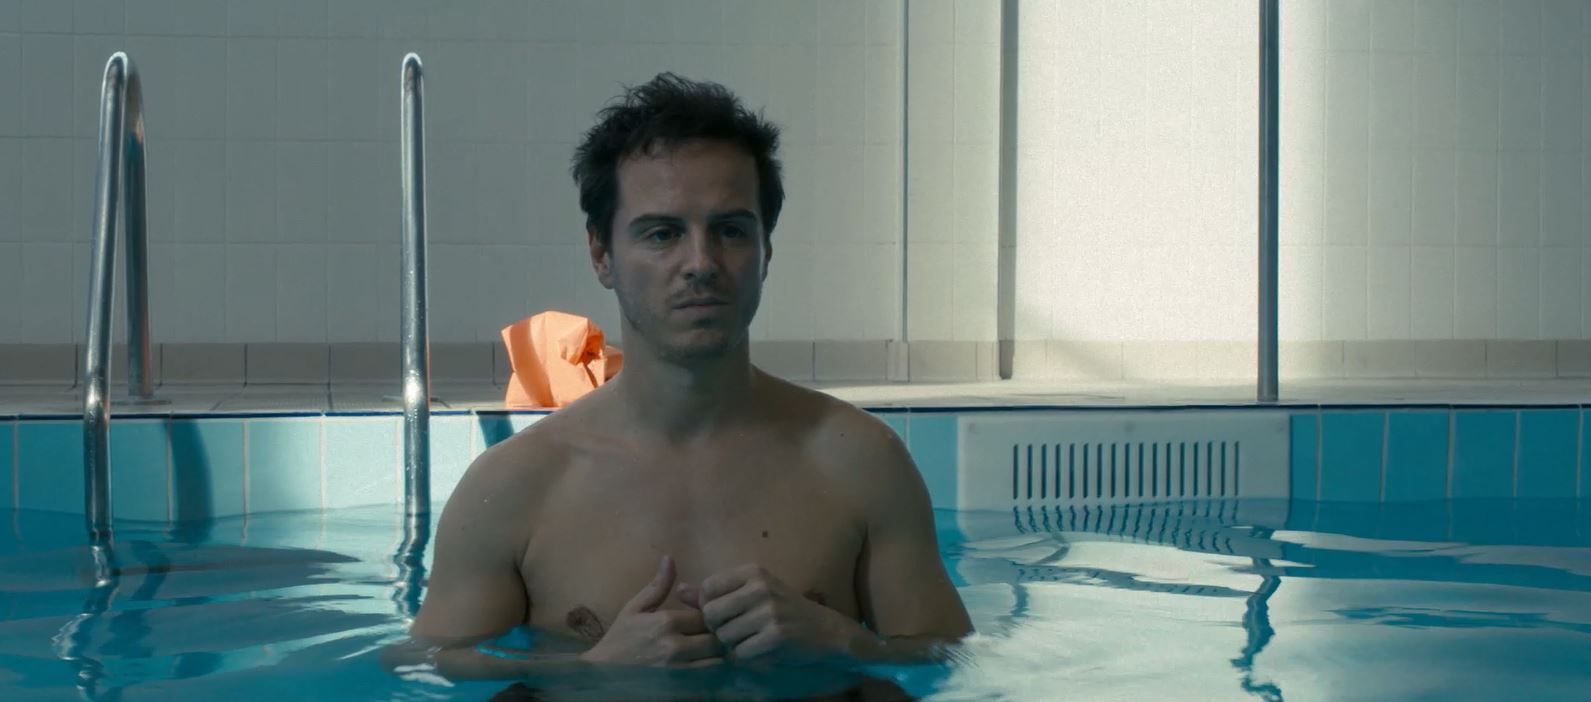 Exclusive first trailer for 'The Hope Rooms' starring Sherlock's Andrew Scott https://t.co/M94dhRxn2X https://t.co/6UzKasXv9j